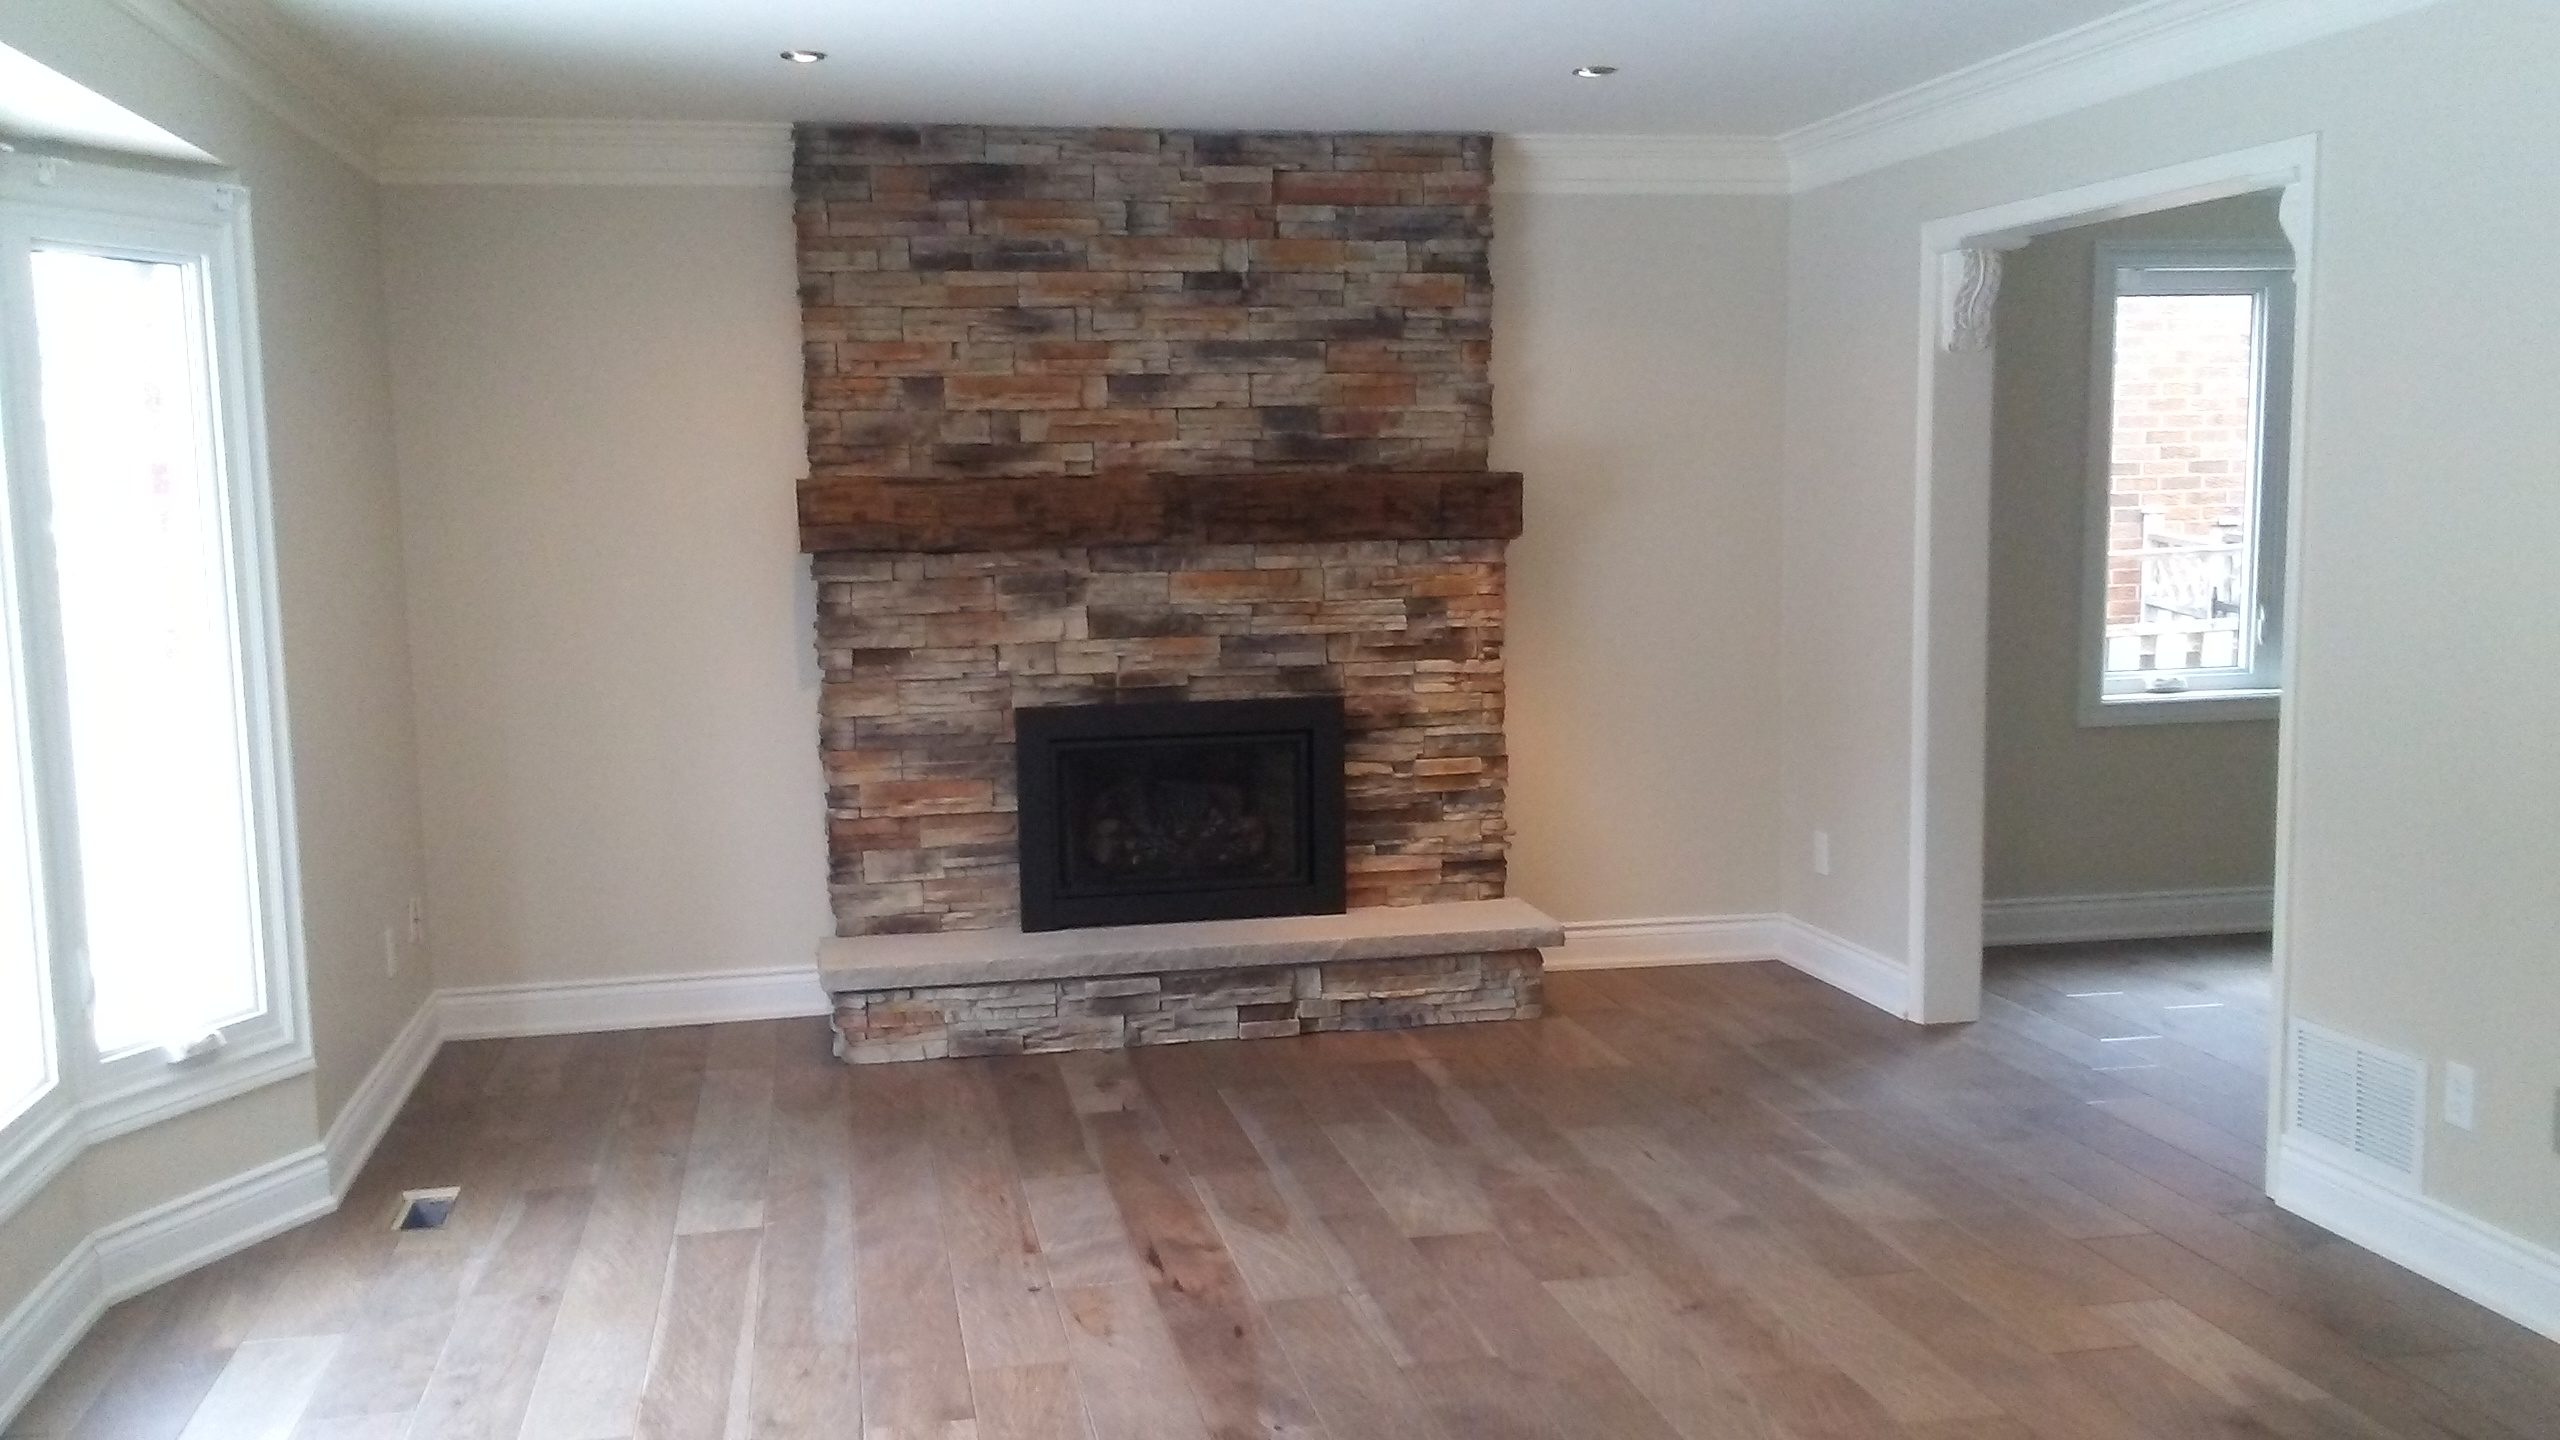 Fireplace Mantel Amp Family Room Reno My Road To Wealth